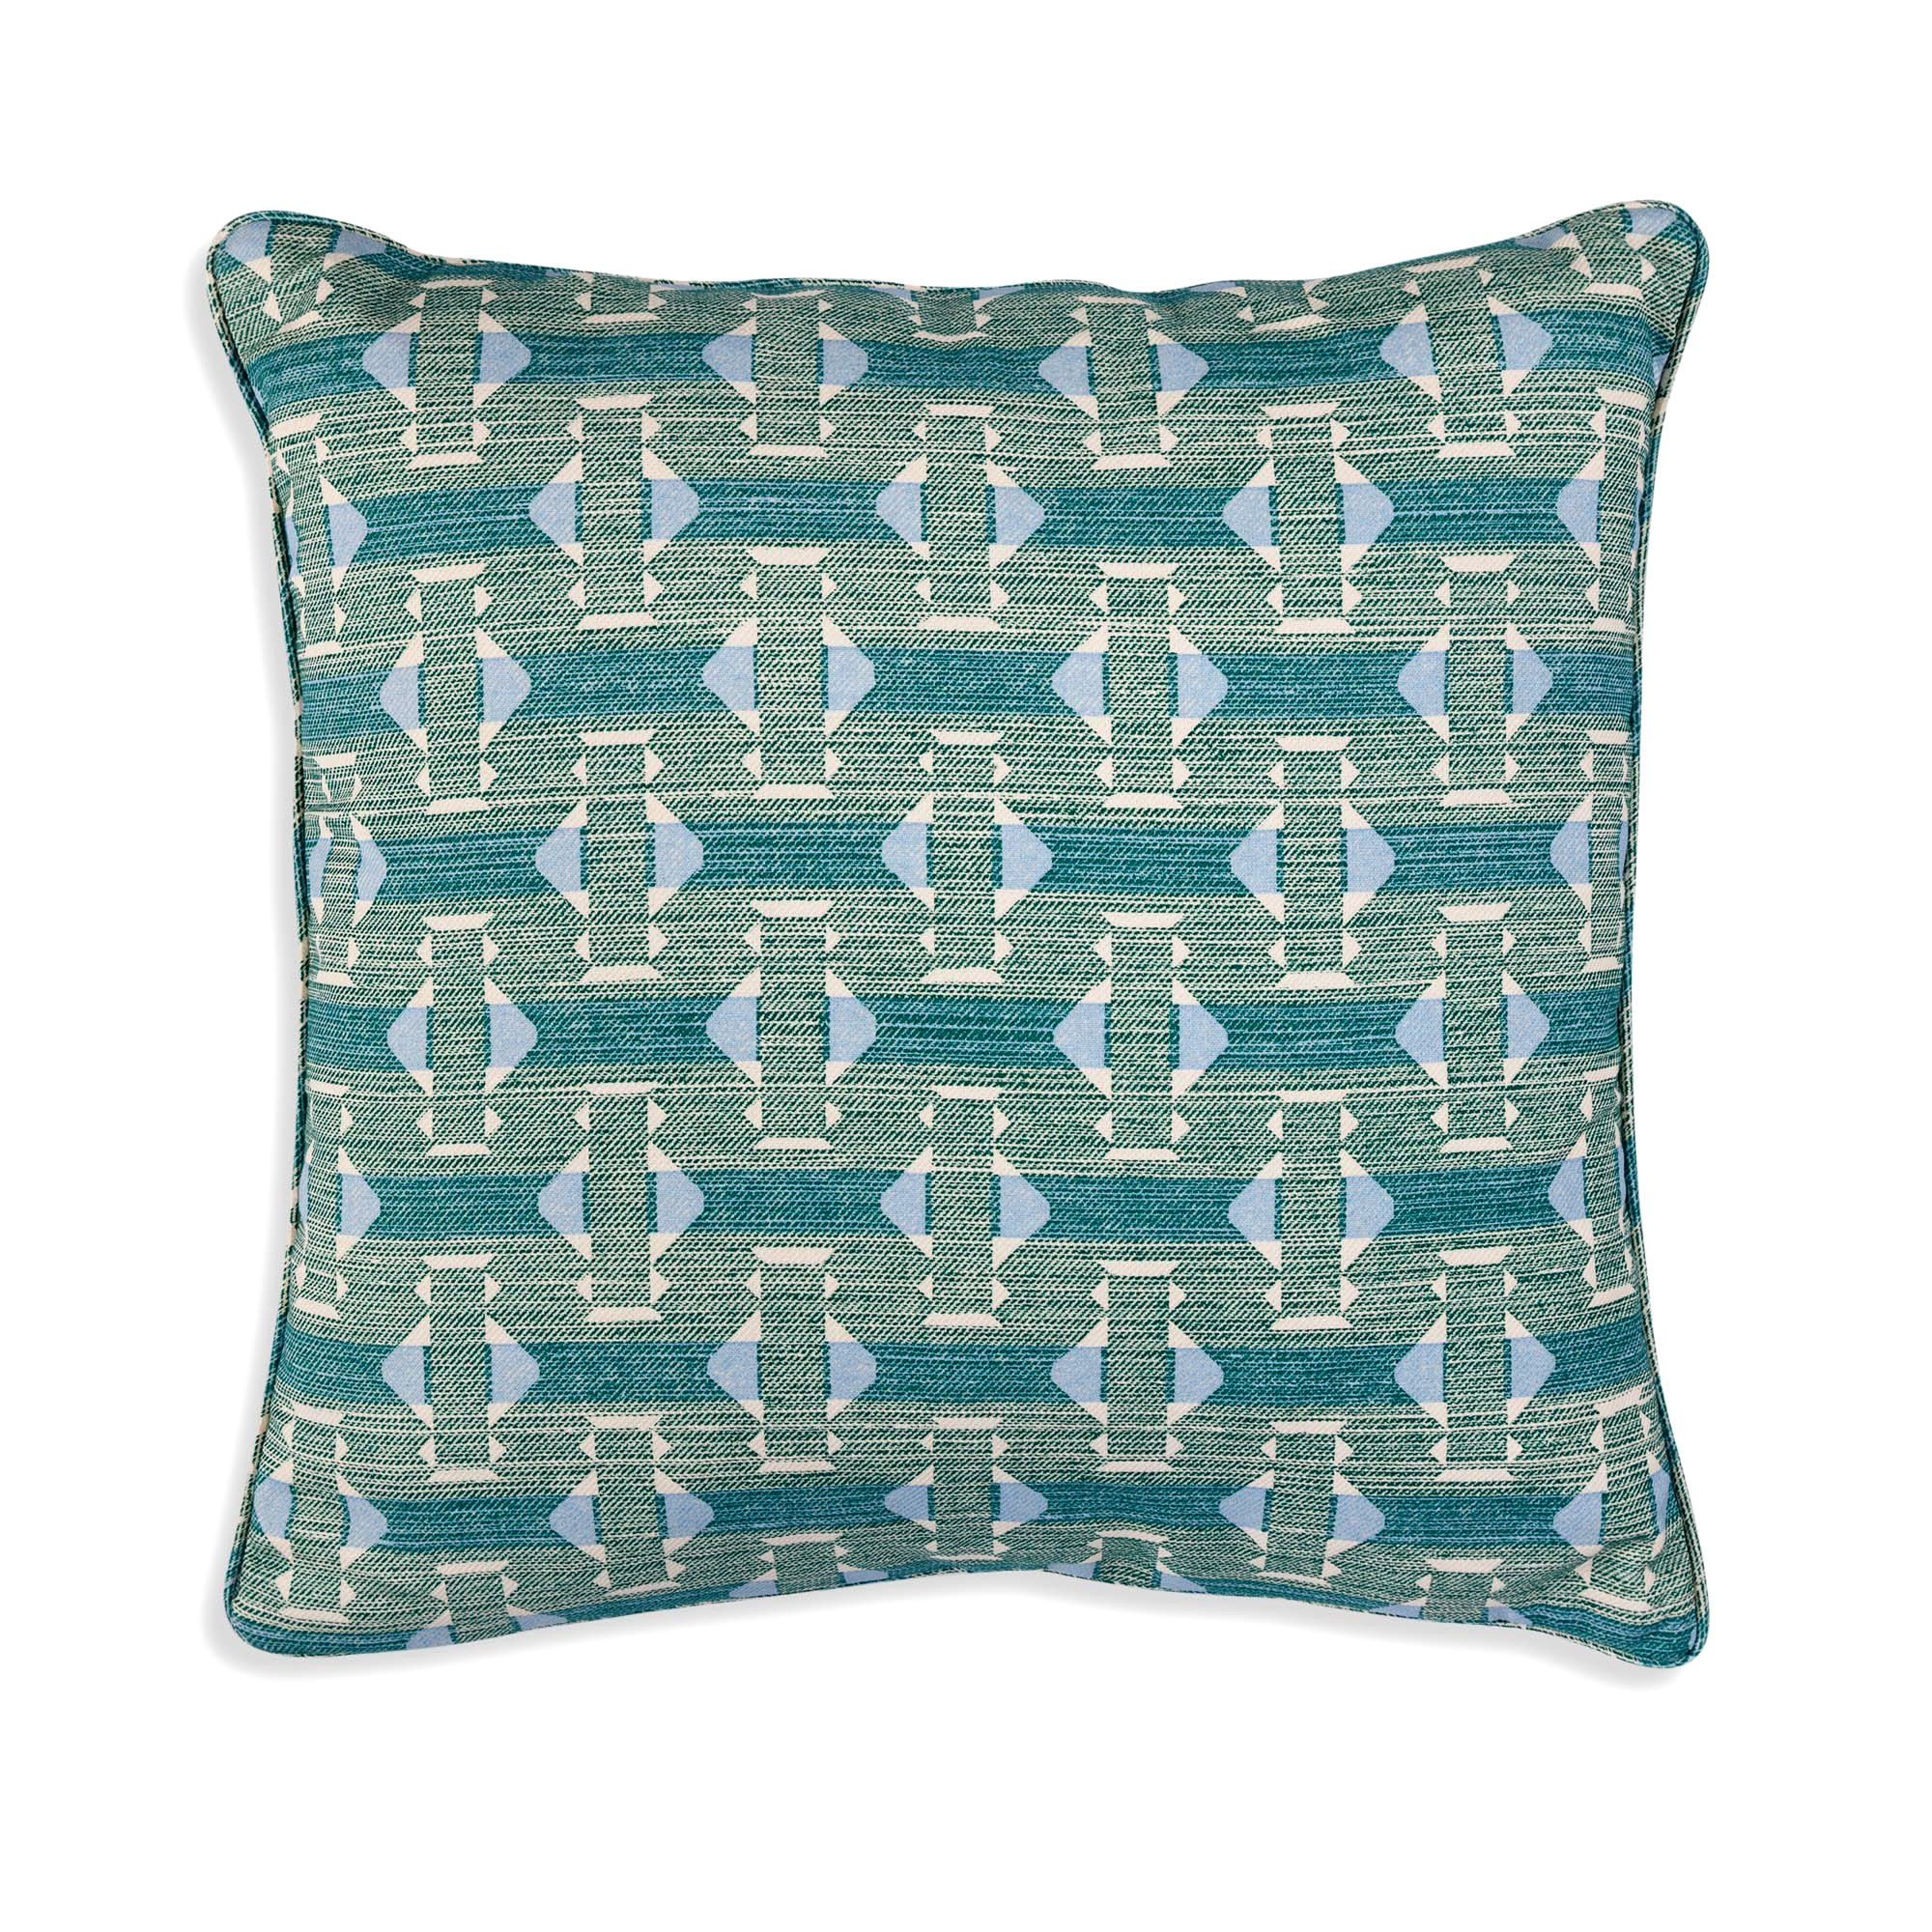 Small Square Cushion in Green Sicily